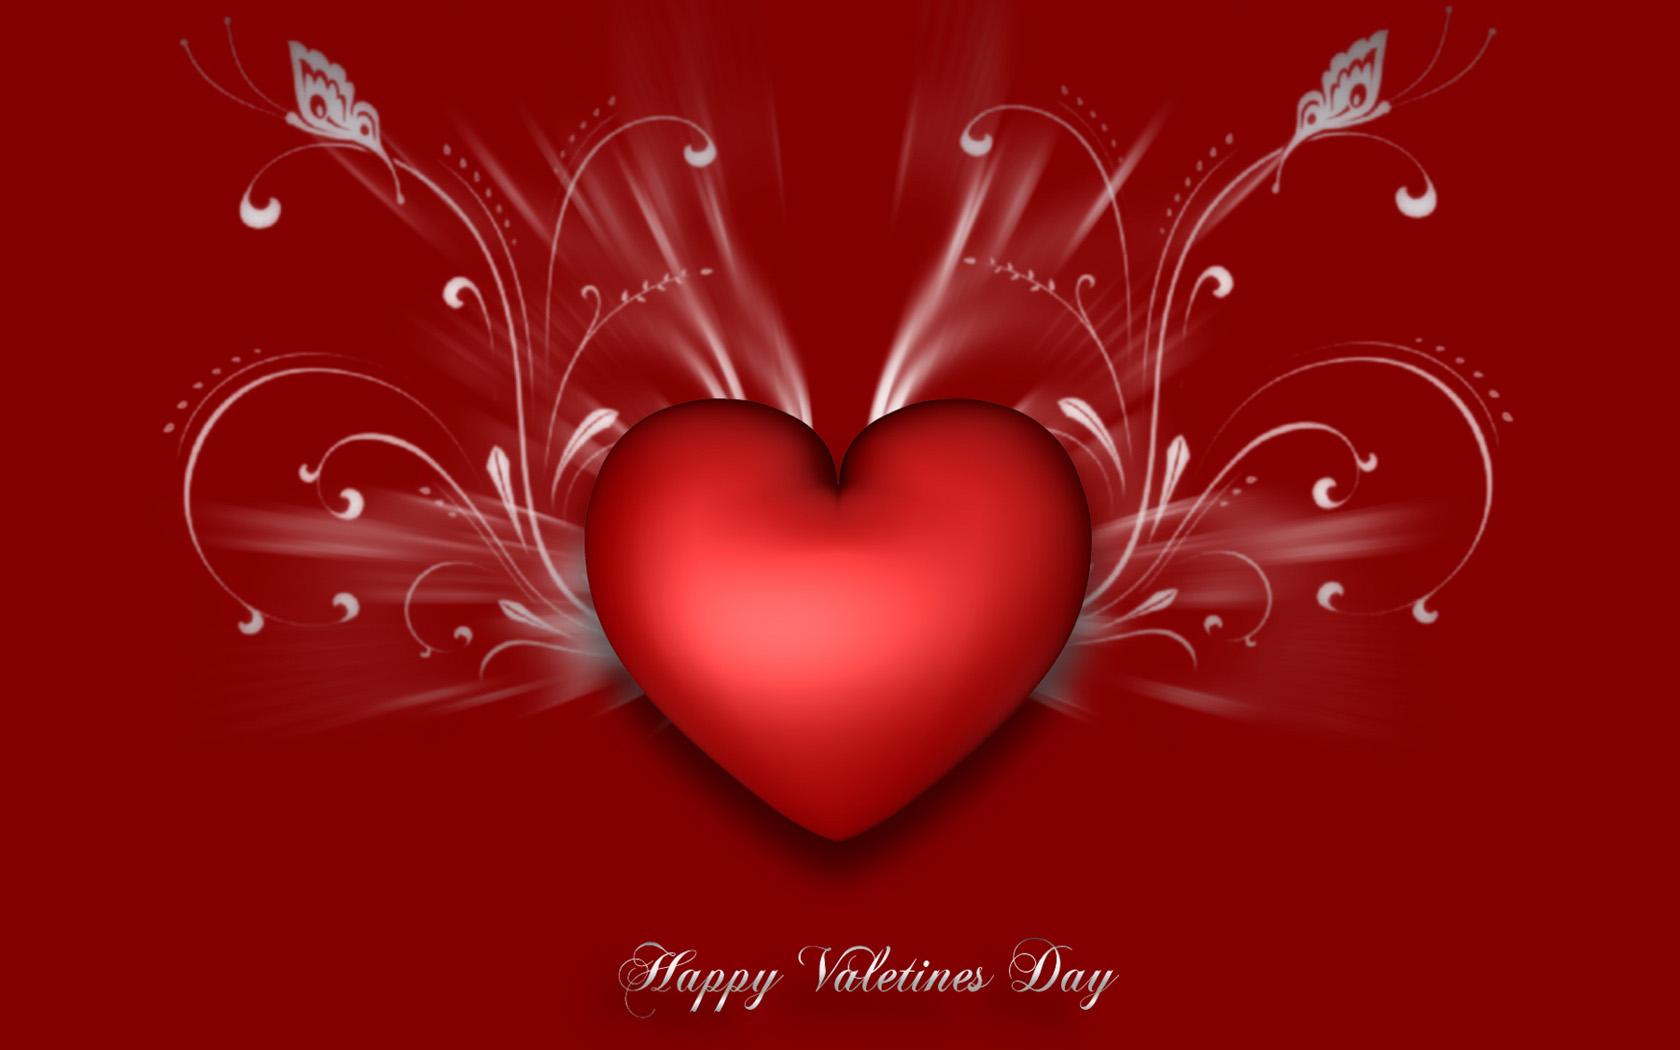 happy valentines day wallpaper 09 happy valentines day wallpaper 10